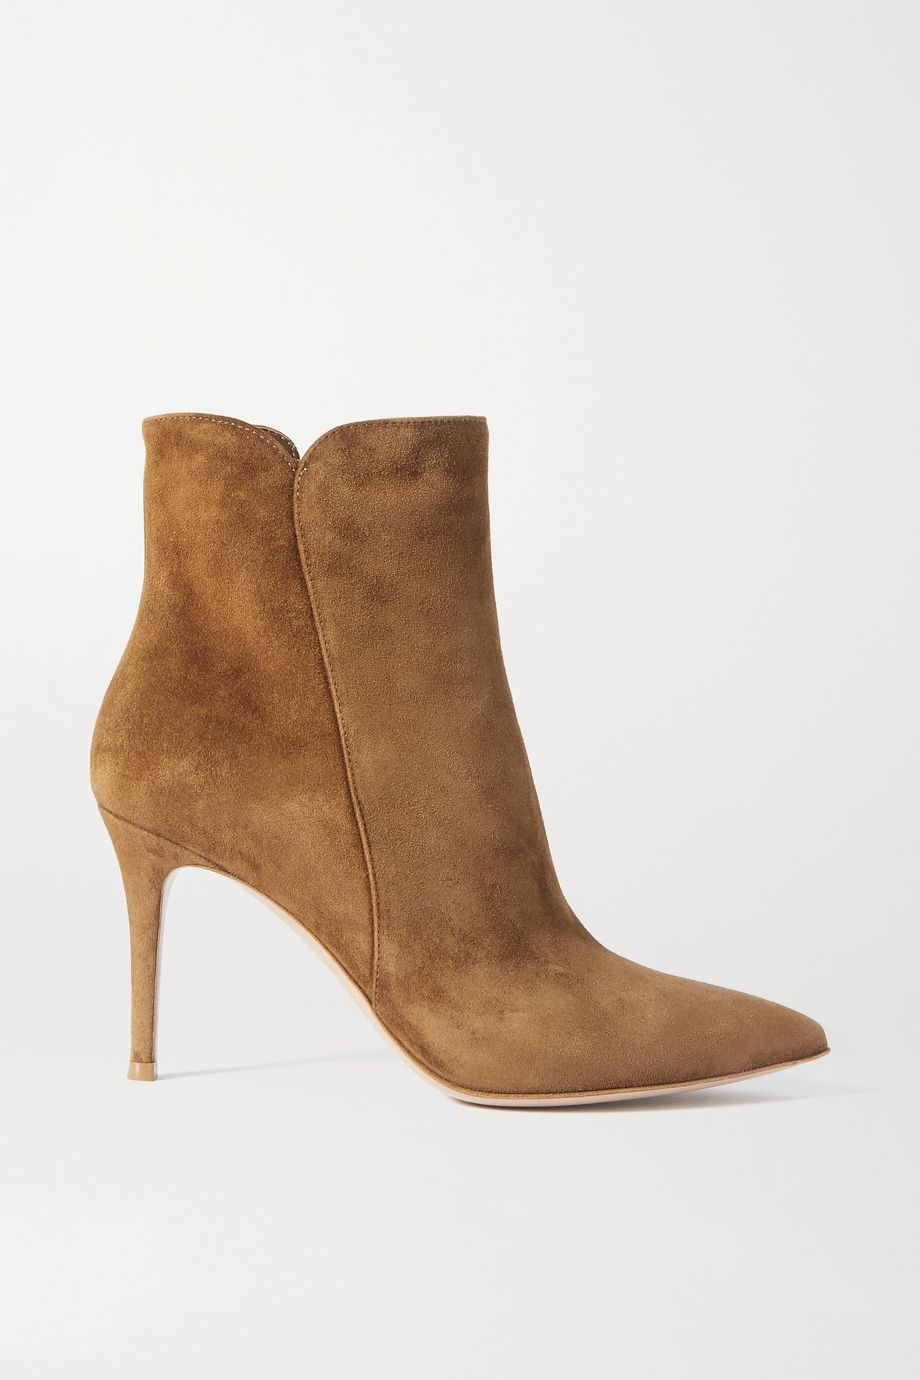 Gianvito Rossi Levy 85 绒面革踝靴